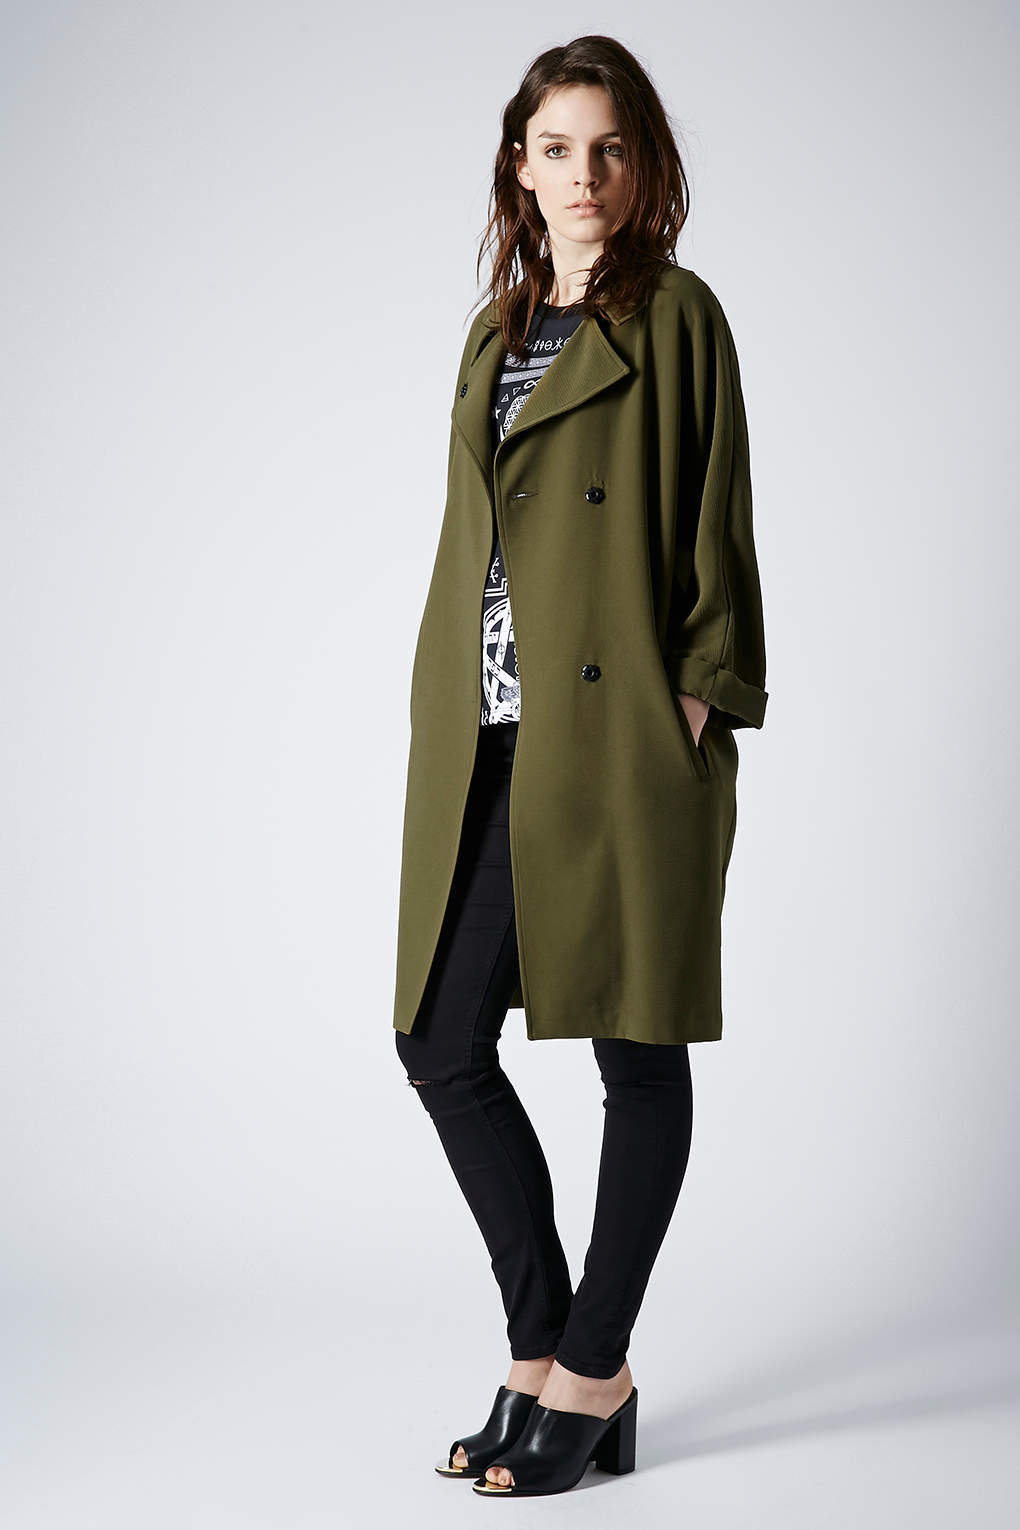 Browse Topshop® Womens Clothing at Stylight: 11 items Best sellers Now: at USD $+ Variety of colors» Shop now!